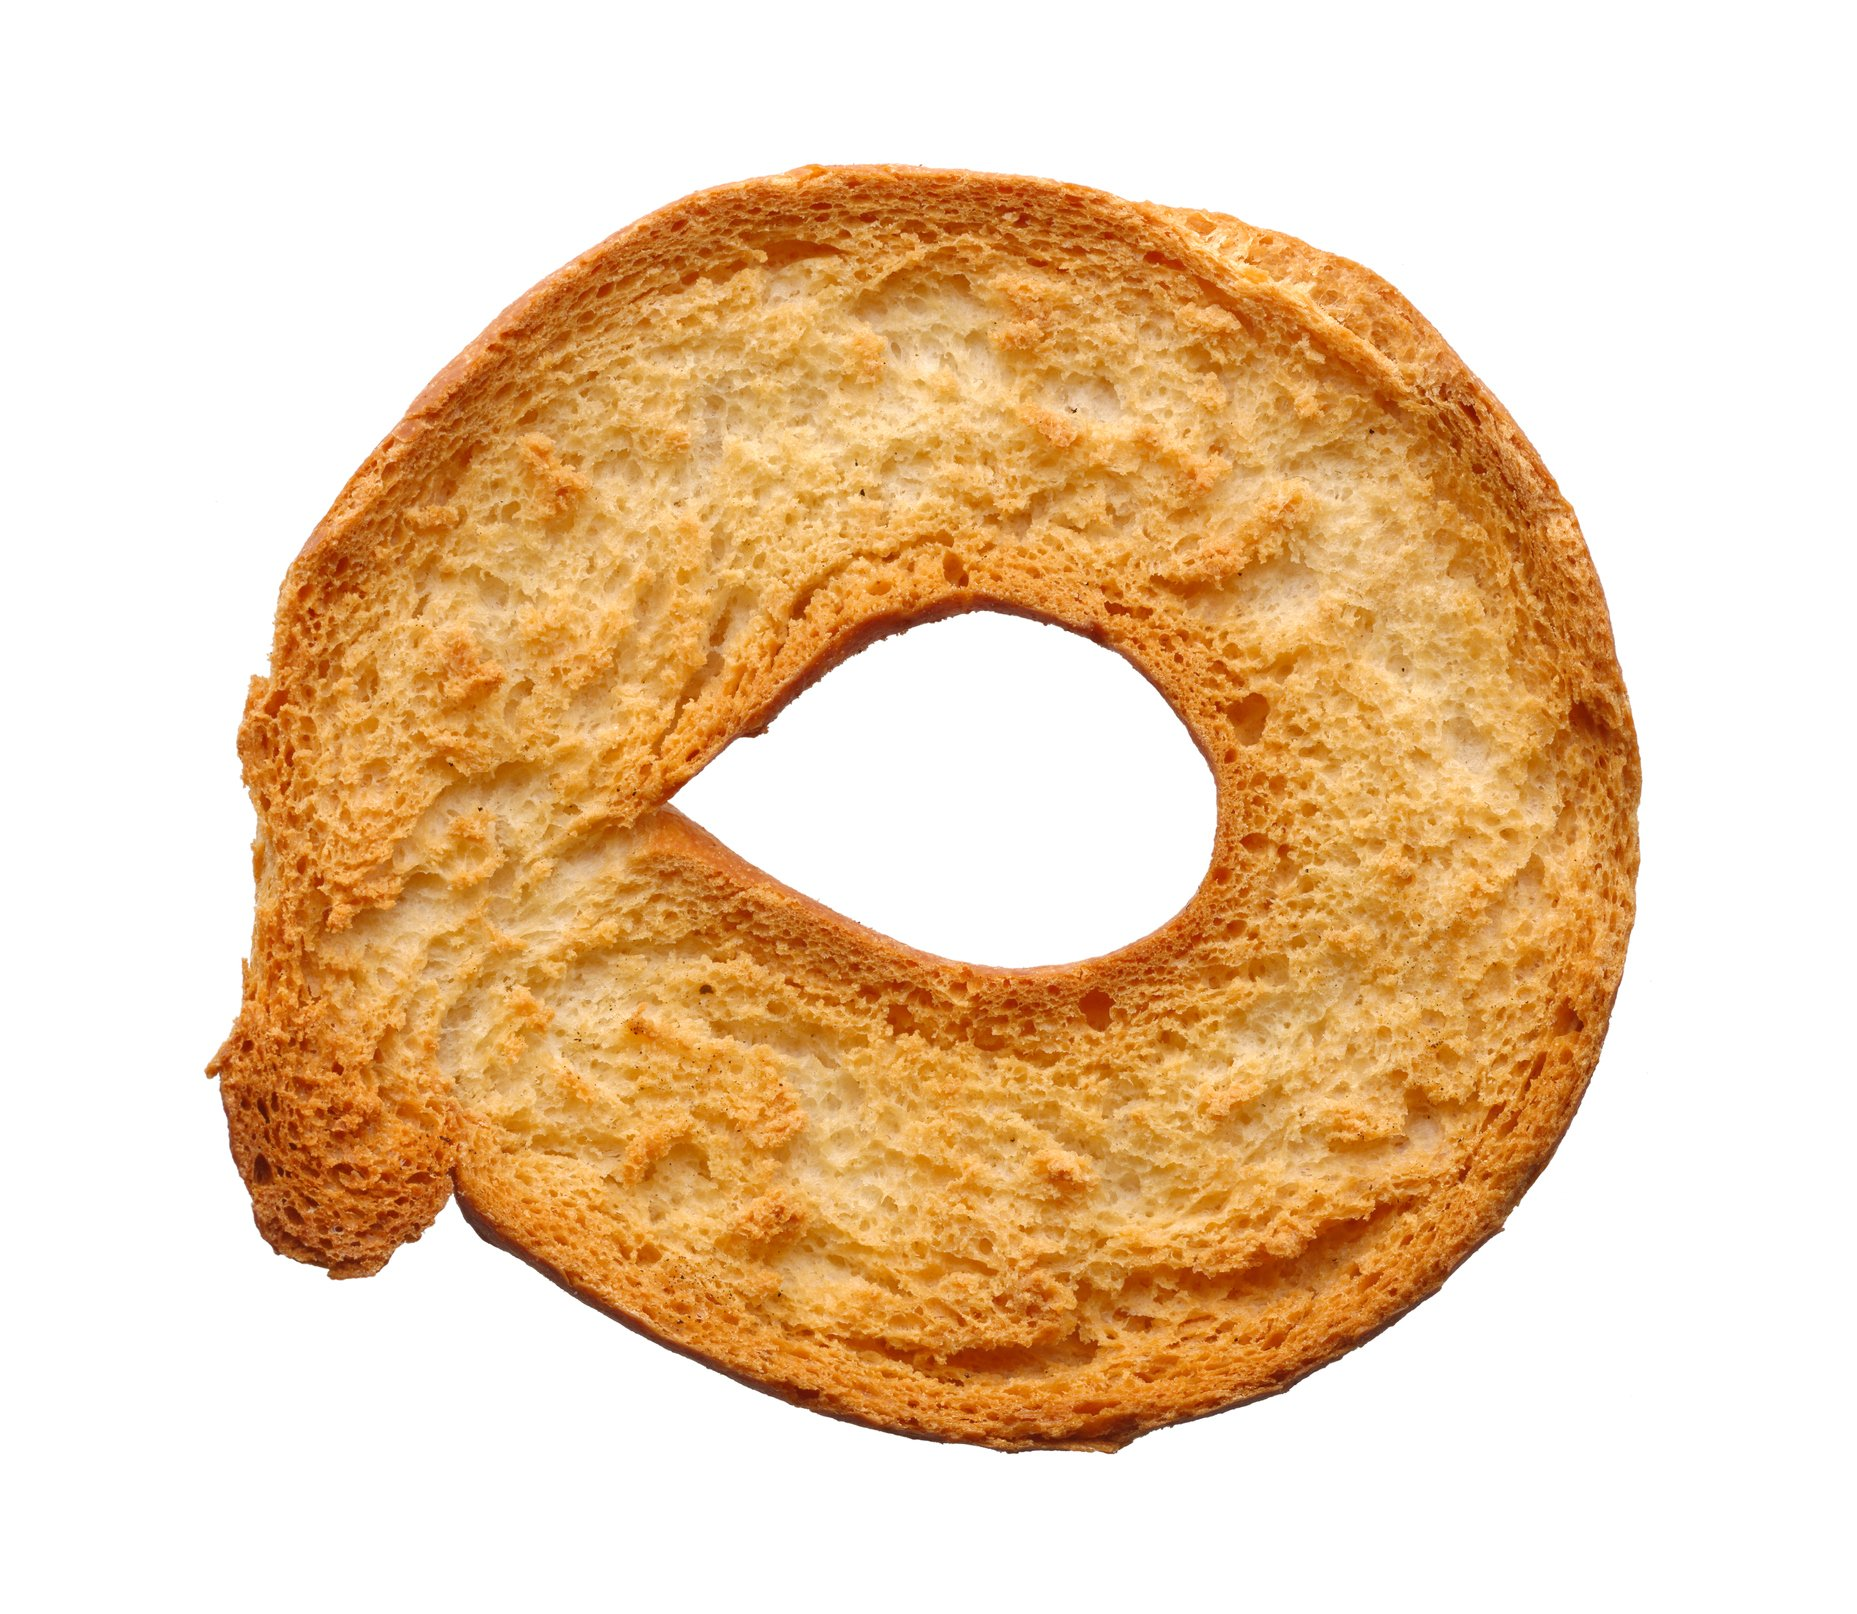 If Joe Biden Wants to Unify the Nation, Why Did He Get a Toasted Bagel?